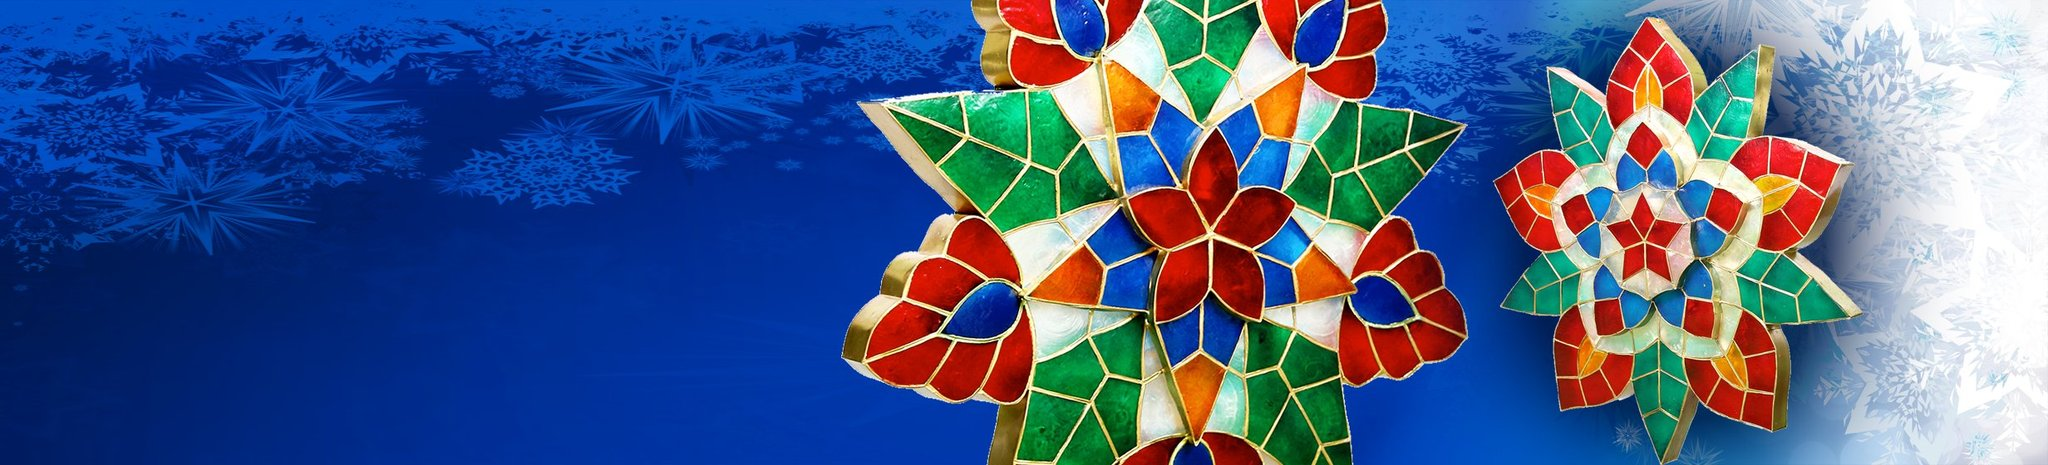 Filipino parol for sale in america - Parols For Sale Handcrafted Filipino Christmas Lanterns